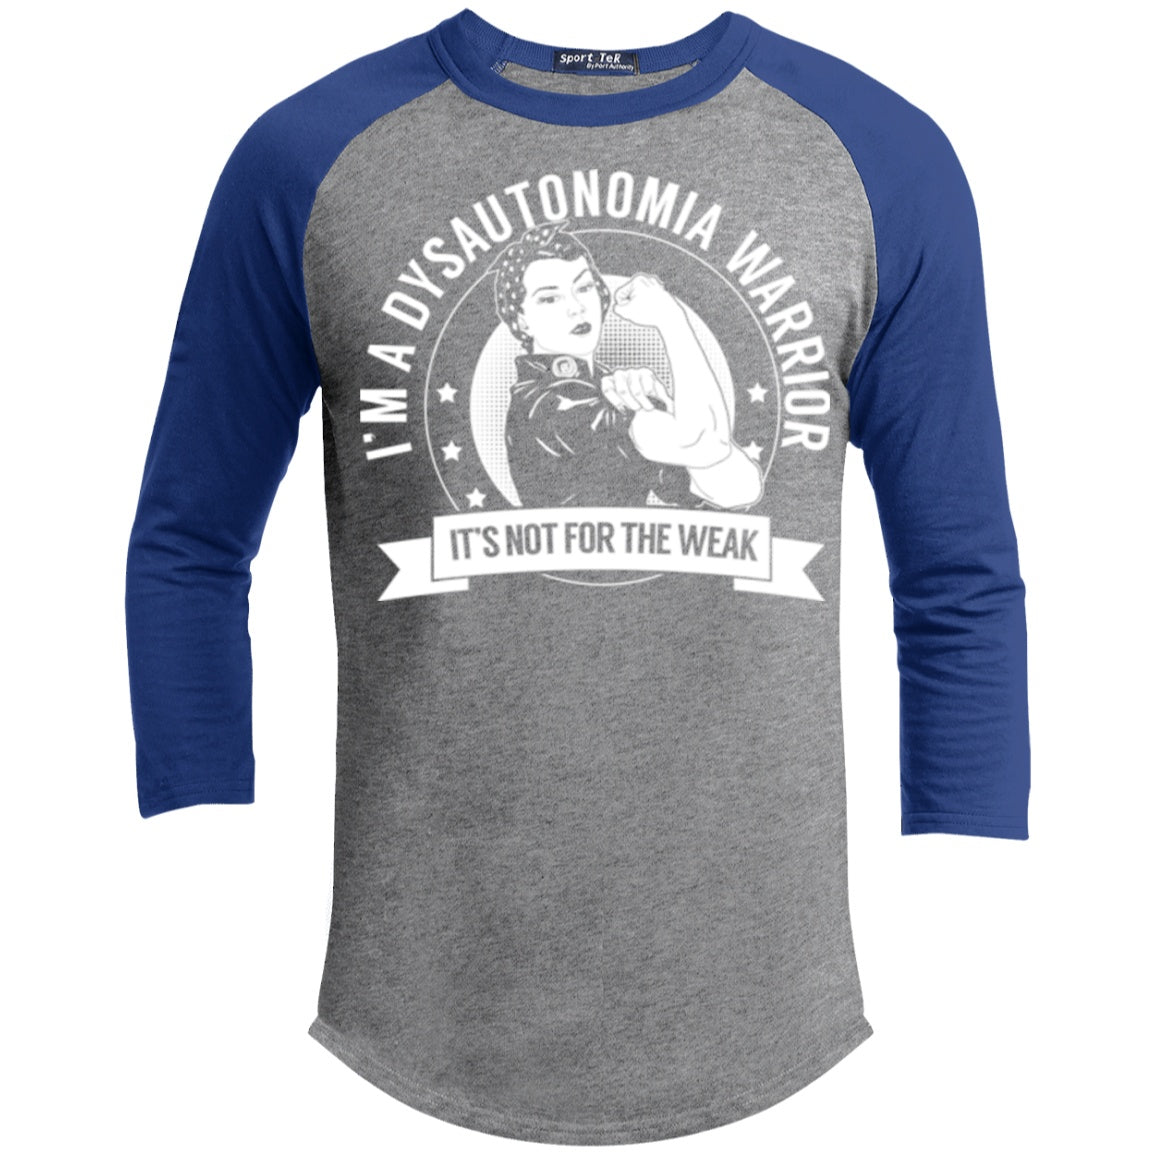 Dysautonomia Warrior Not For The Weak Baseball Shirt - The Unchargeables